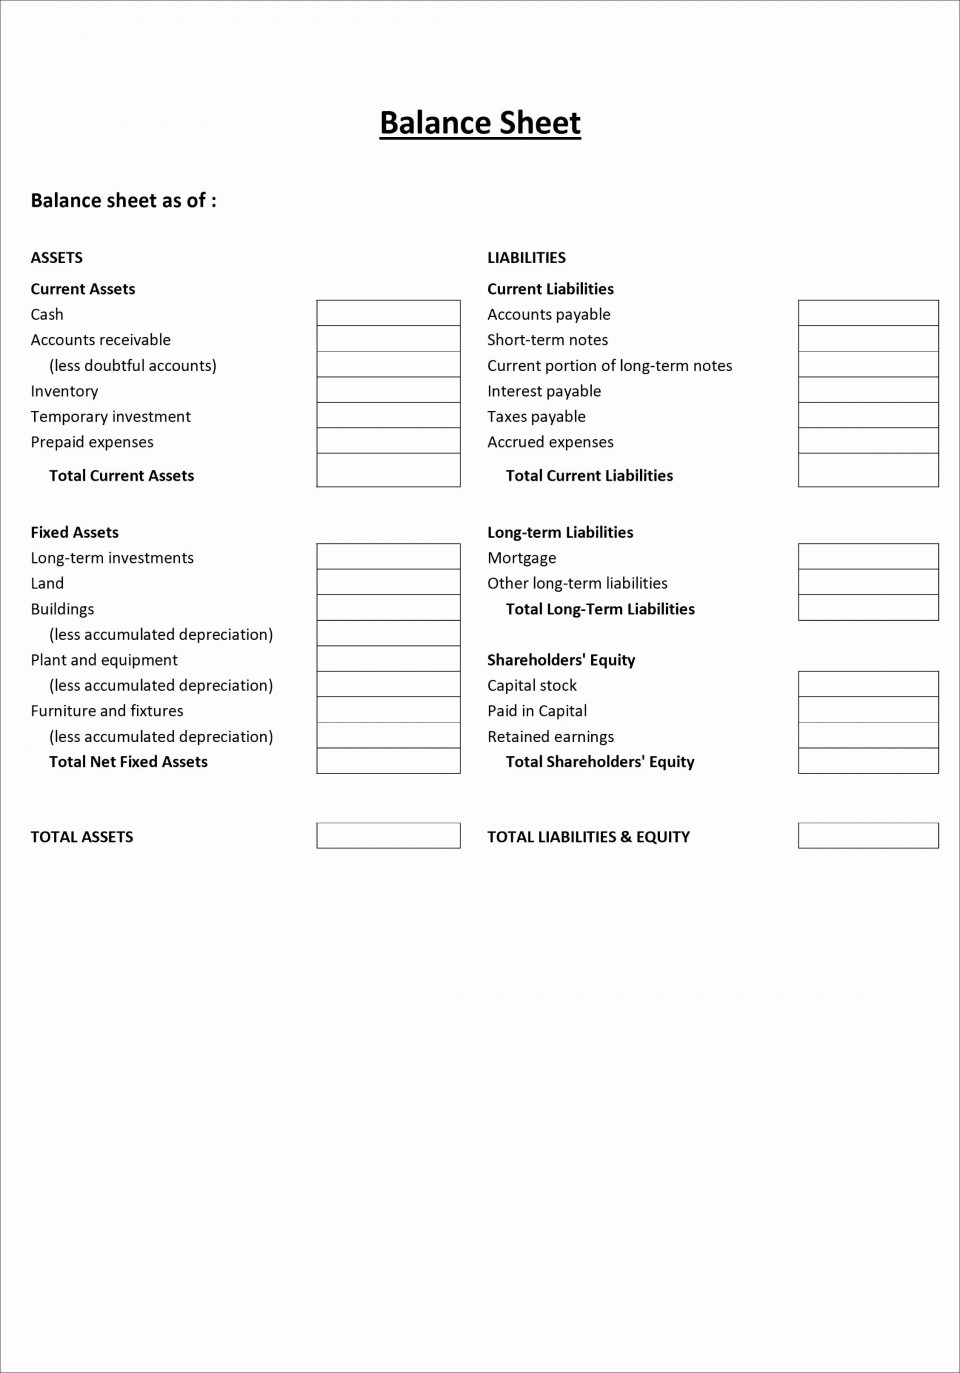 001 Fearsome Simple Balance Sheet Template Photo  Example For Small Busines Sample A Church960